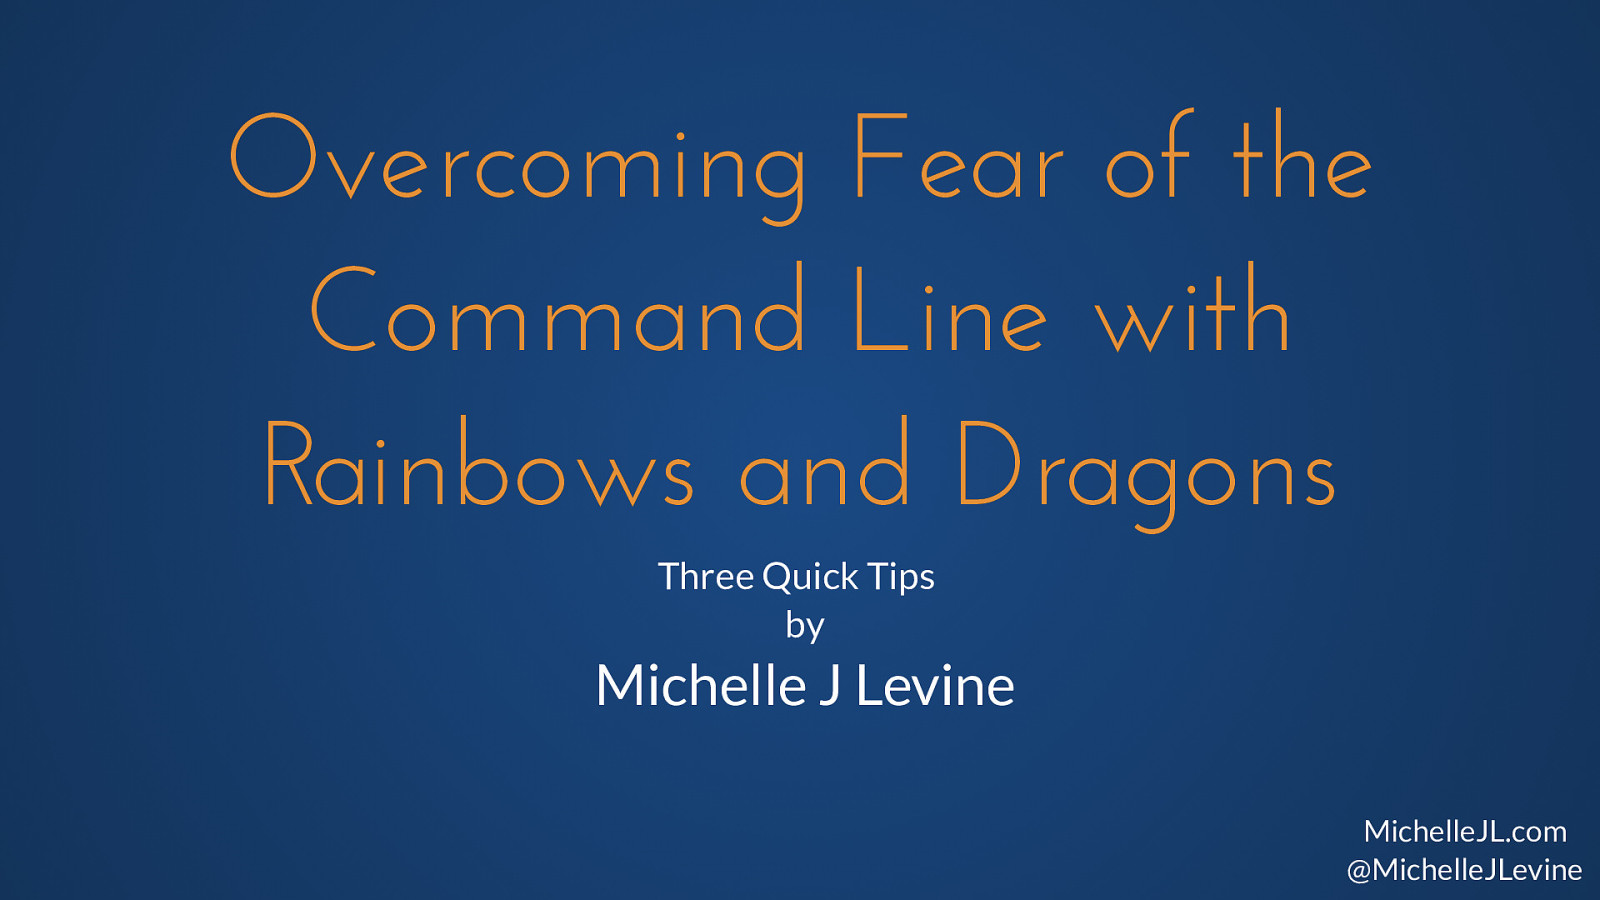 Overcoming Fear of the Command Line with Rainbows and Dragons